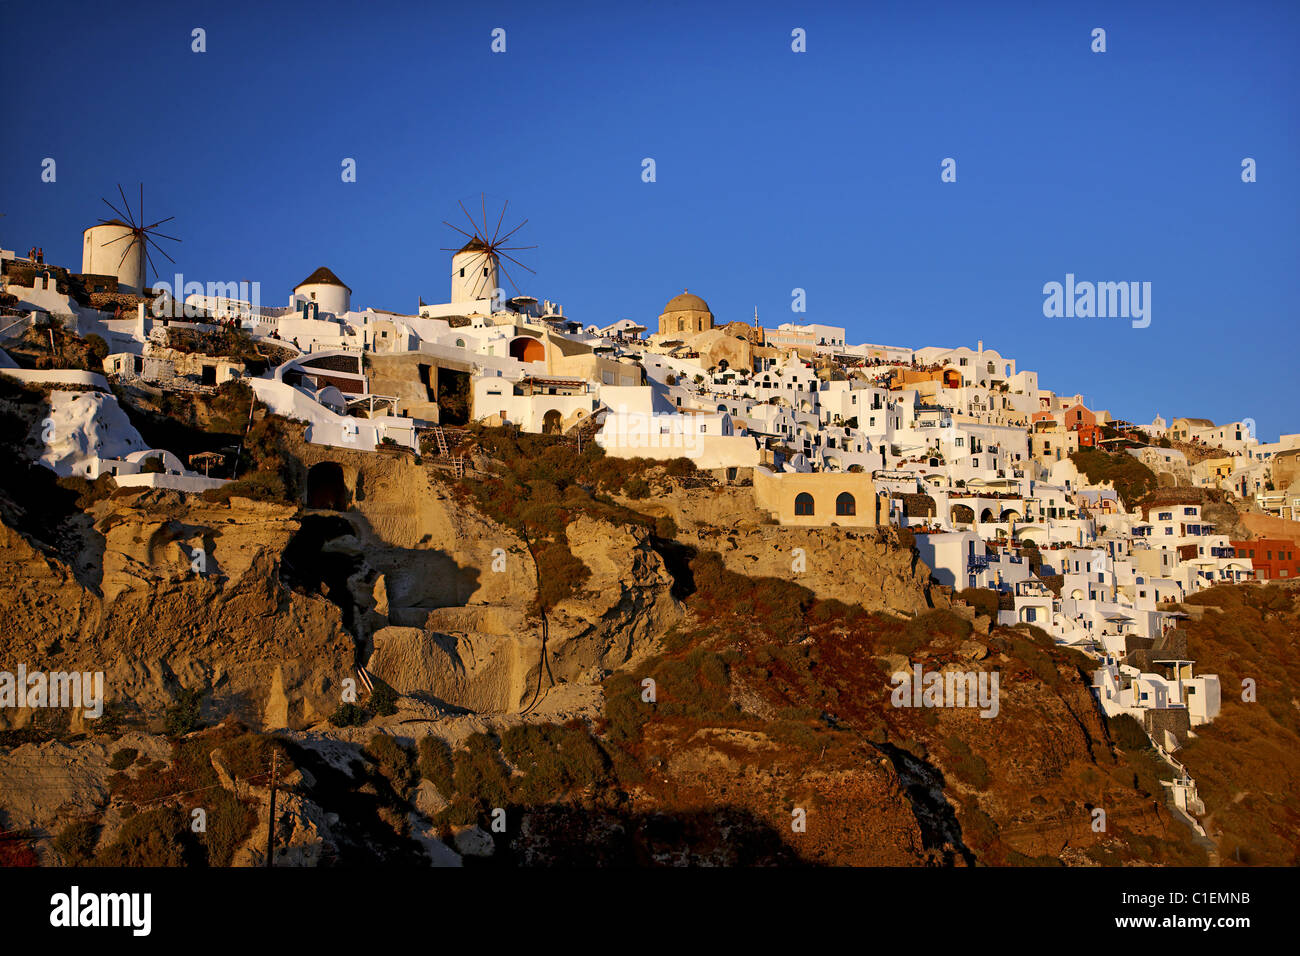 View of the eastern part of Oia village with its famous windmills around sunset. Santorini island, Cyclades, Greece - Stock Image